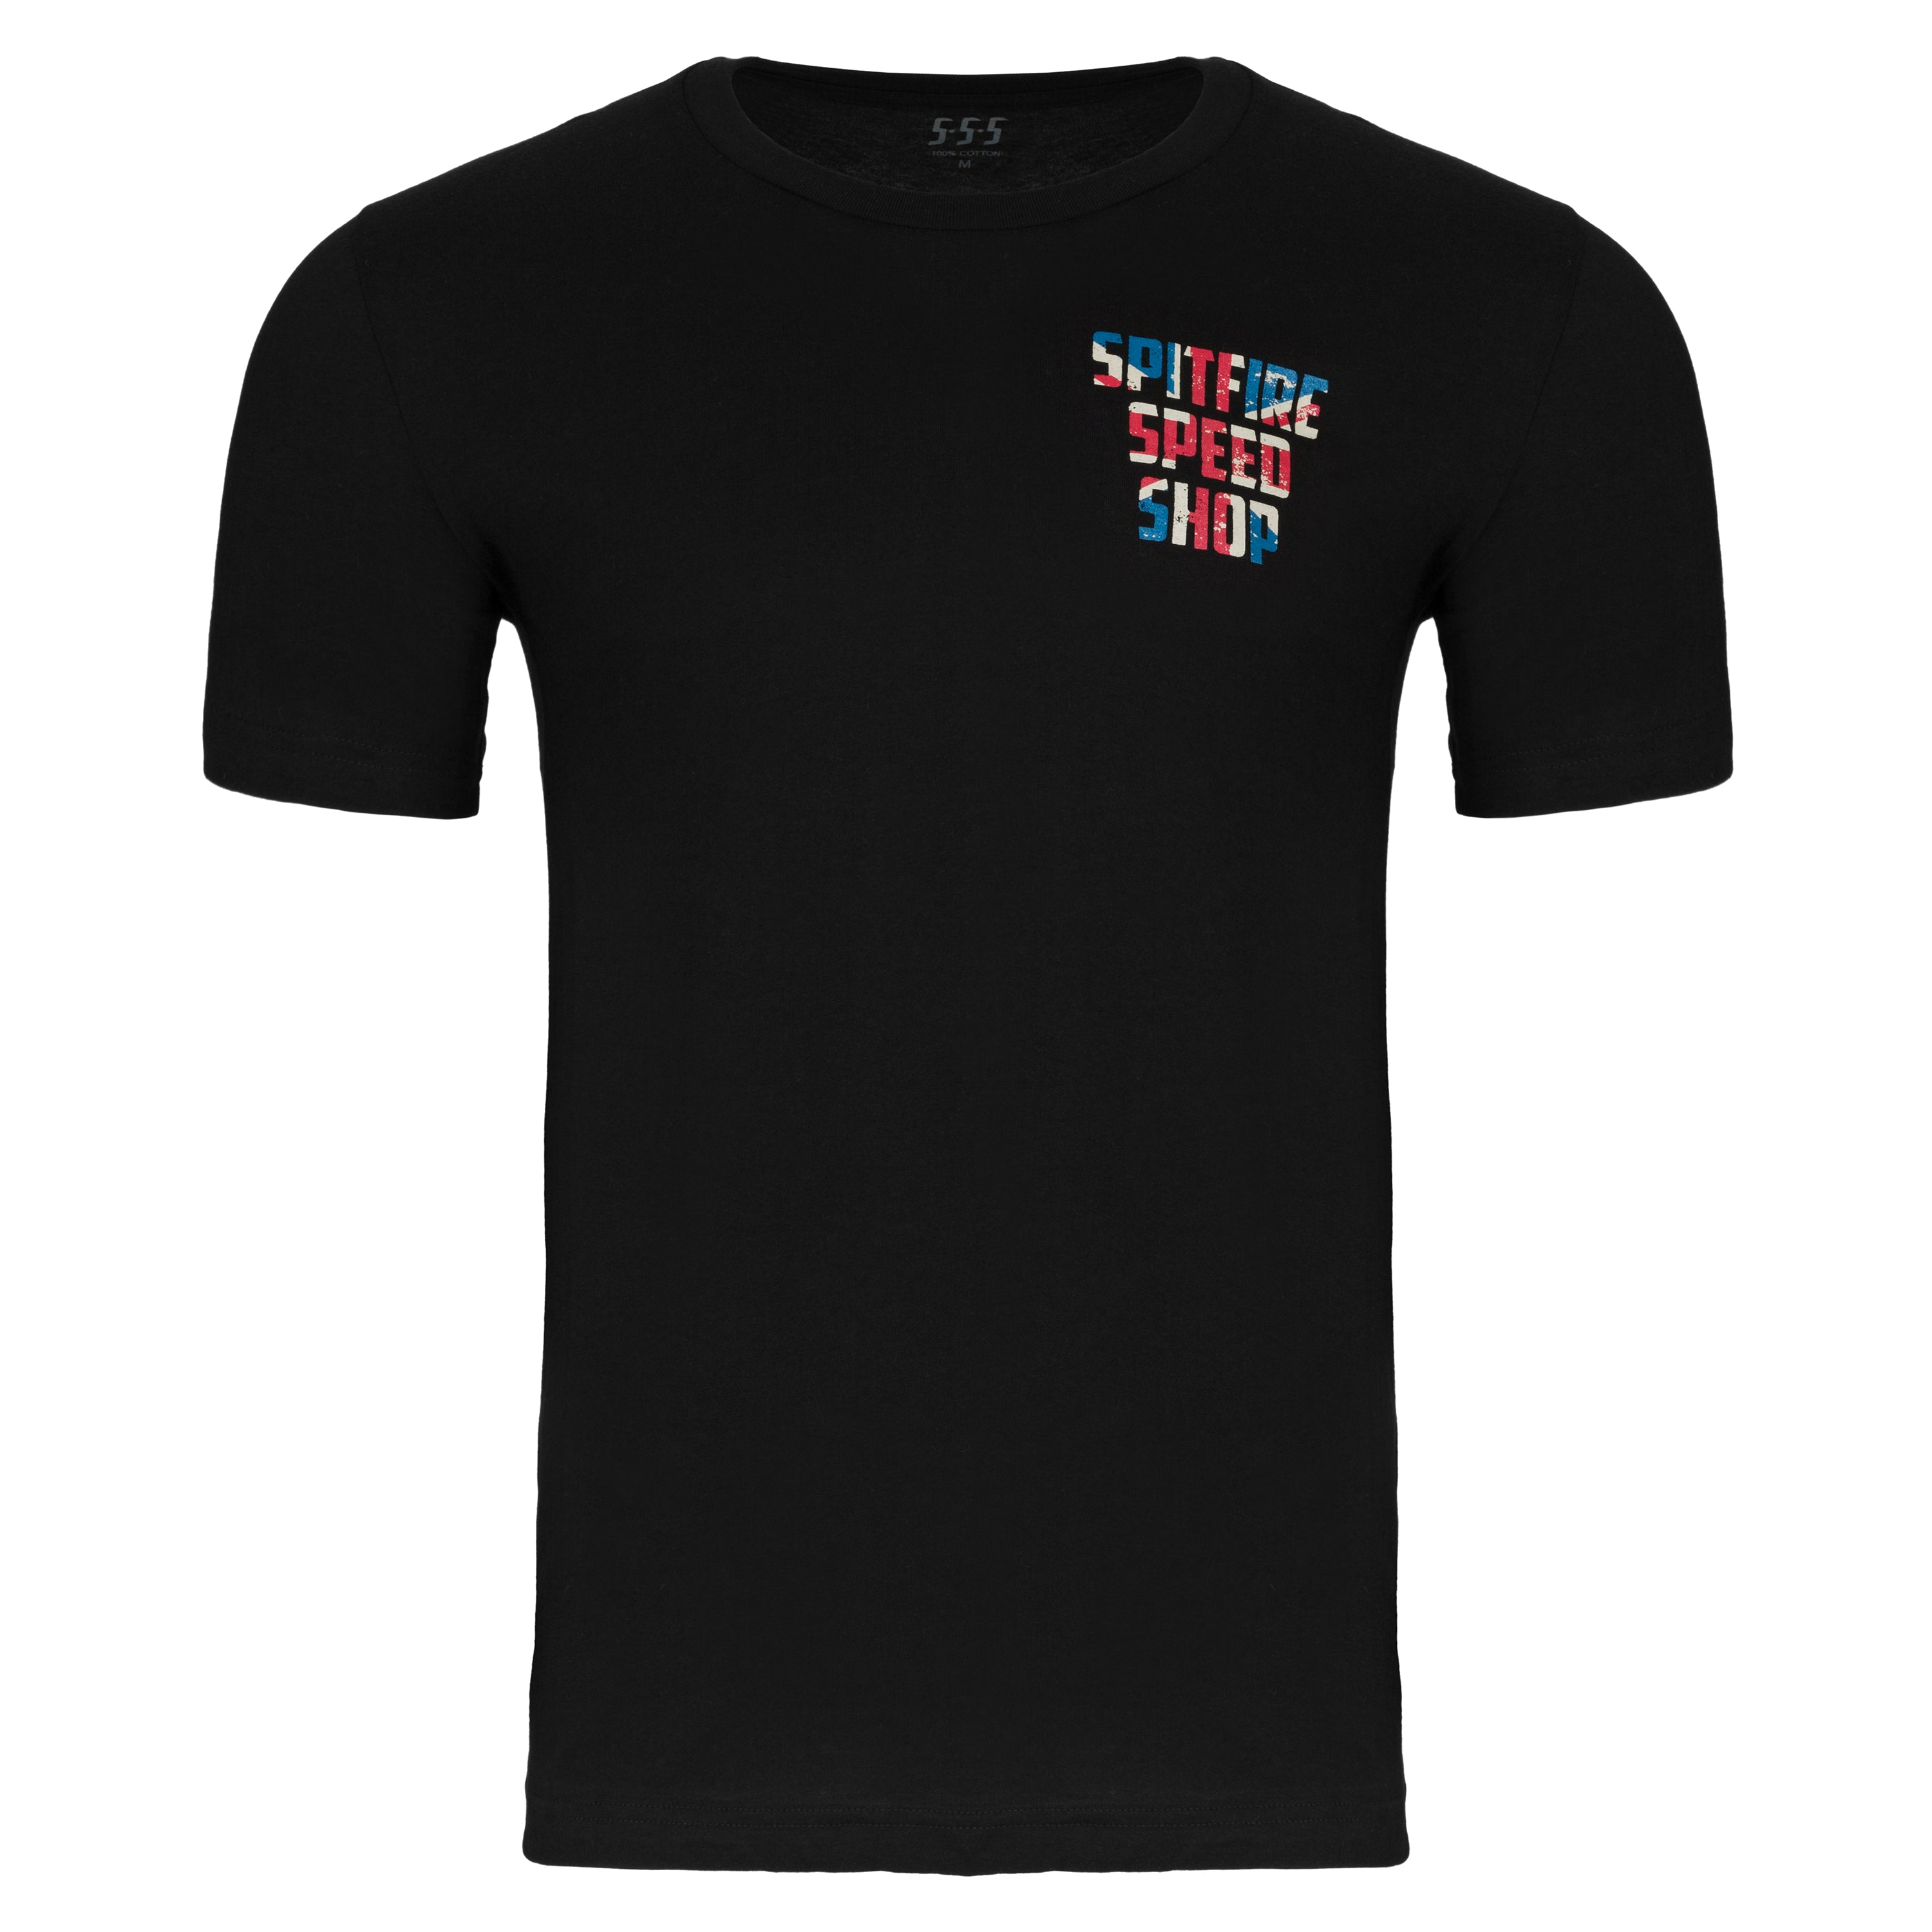 Spitfire Patriot Edition Tee With Union Jack Logo